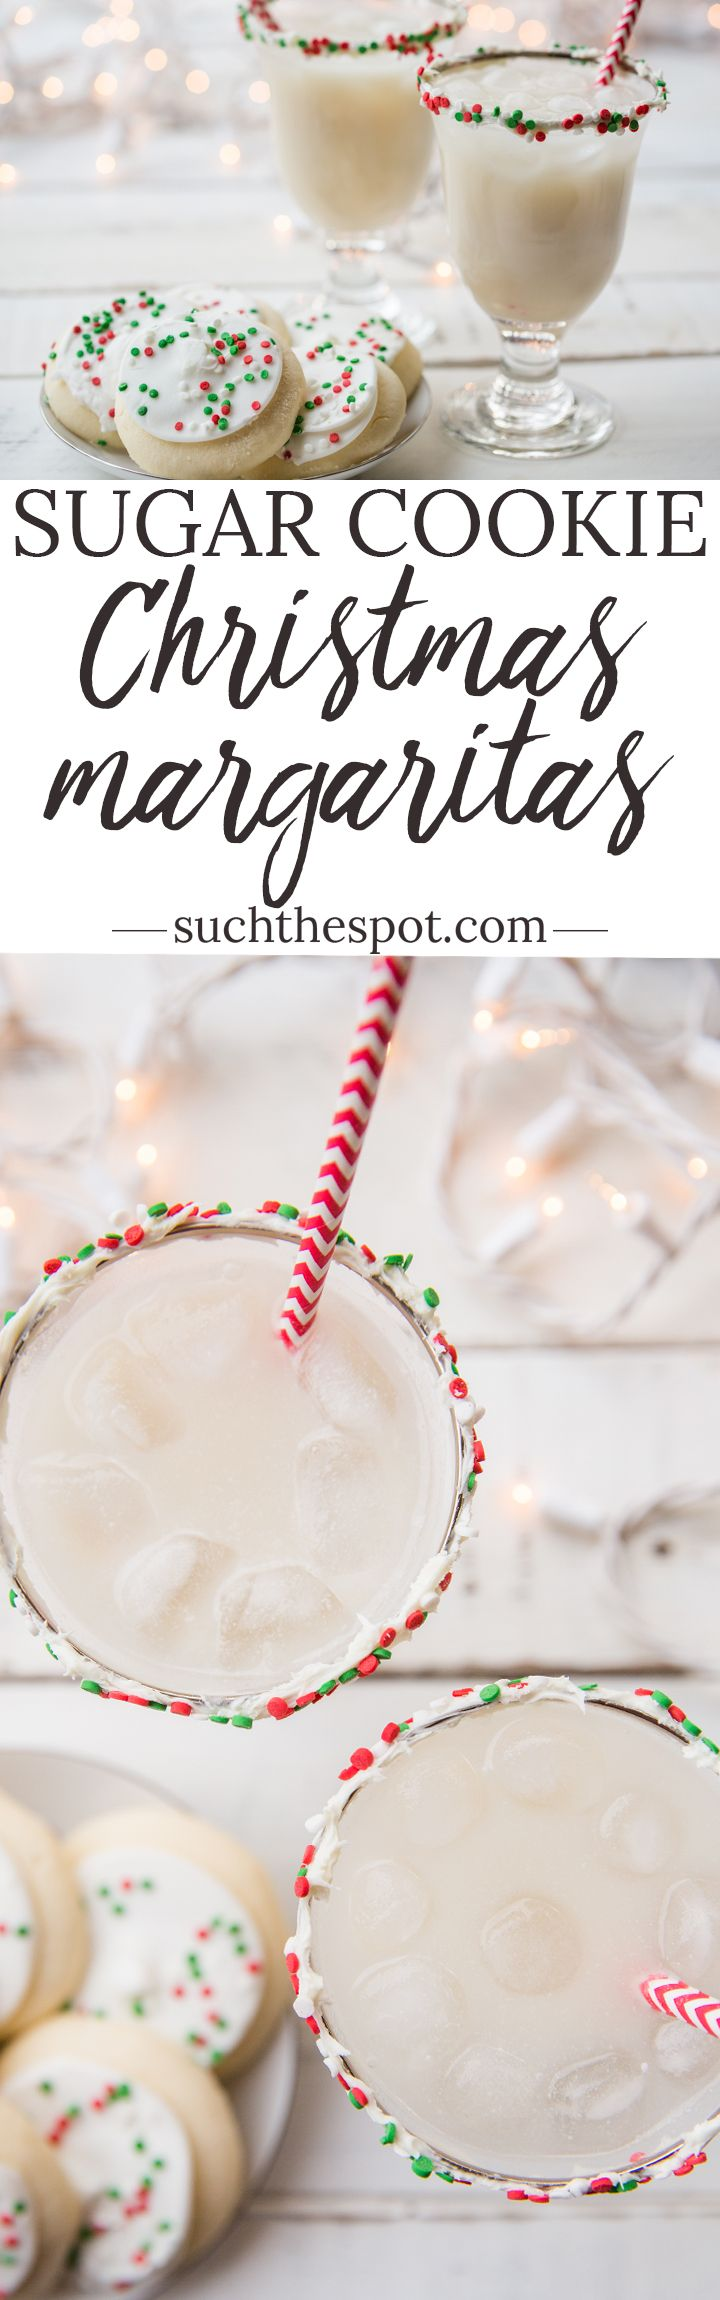 This sugar cookie margarita recipe is a ridiculously fun and festive drink to serve at your holiday cocktail party. It can be made more or less sweet according to your tastes.#Christmas#cocktail#margarita#drinkrecipe#cocktailparty#christmasparty